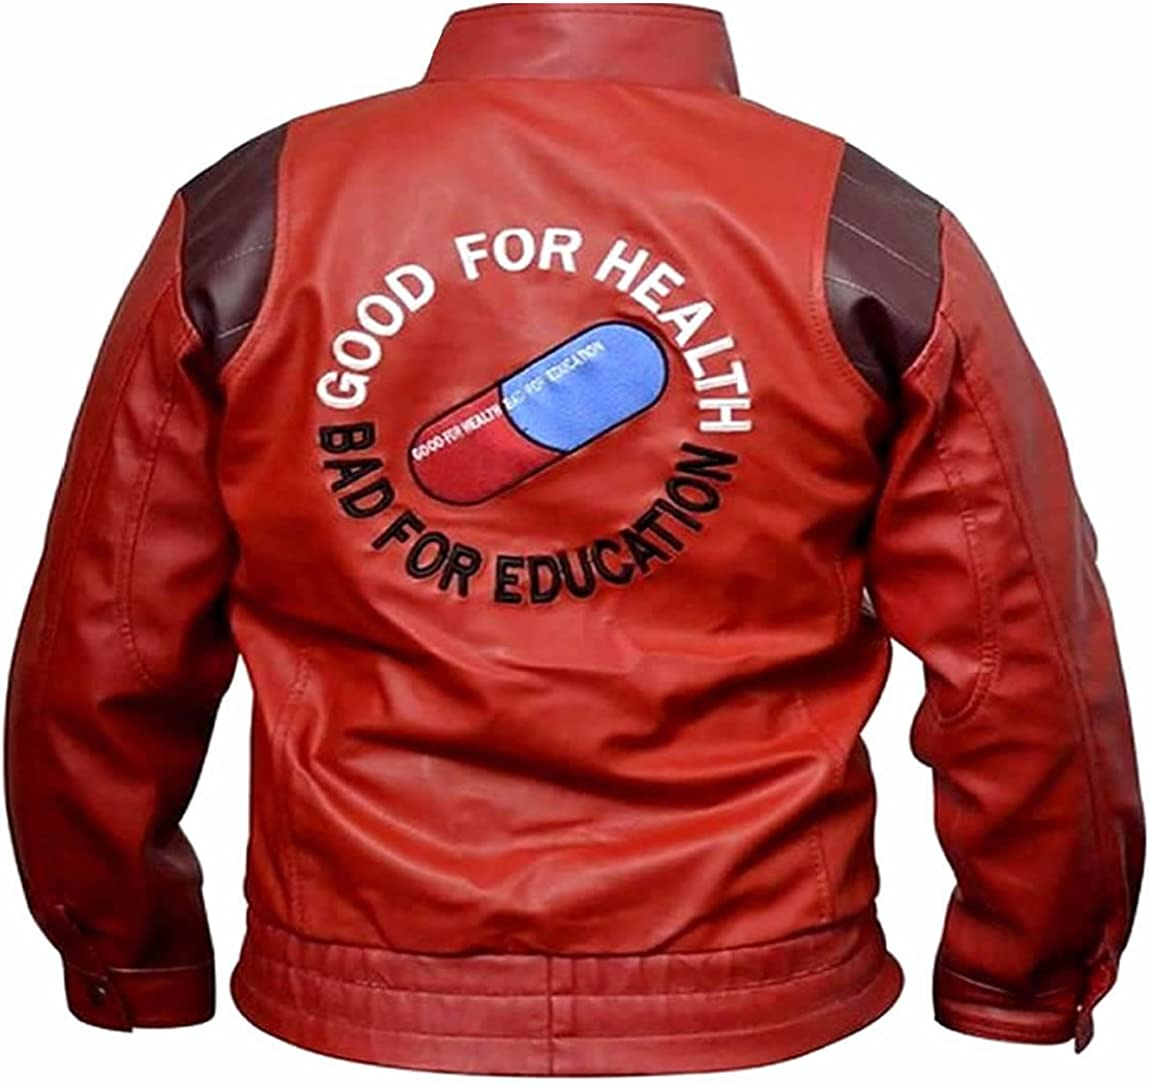 Classyak Mens Fashion Leather Jacket Capsule Embroidered